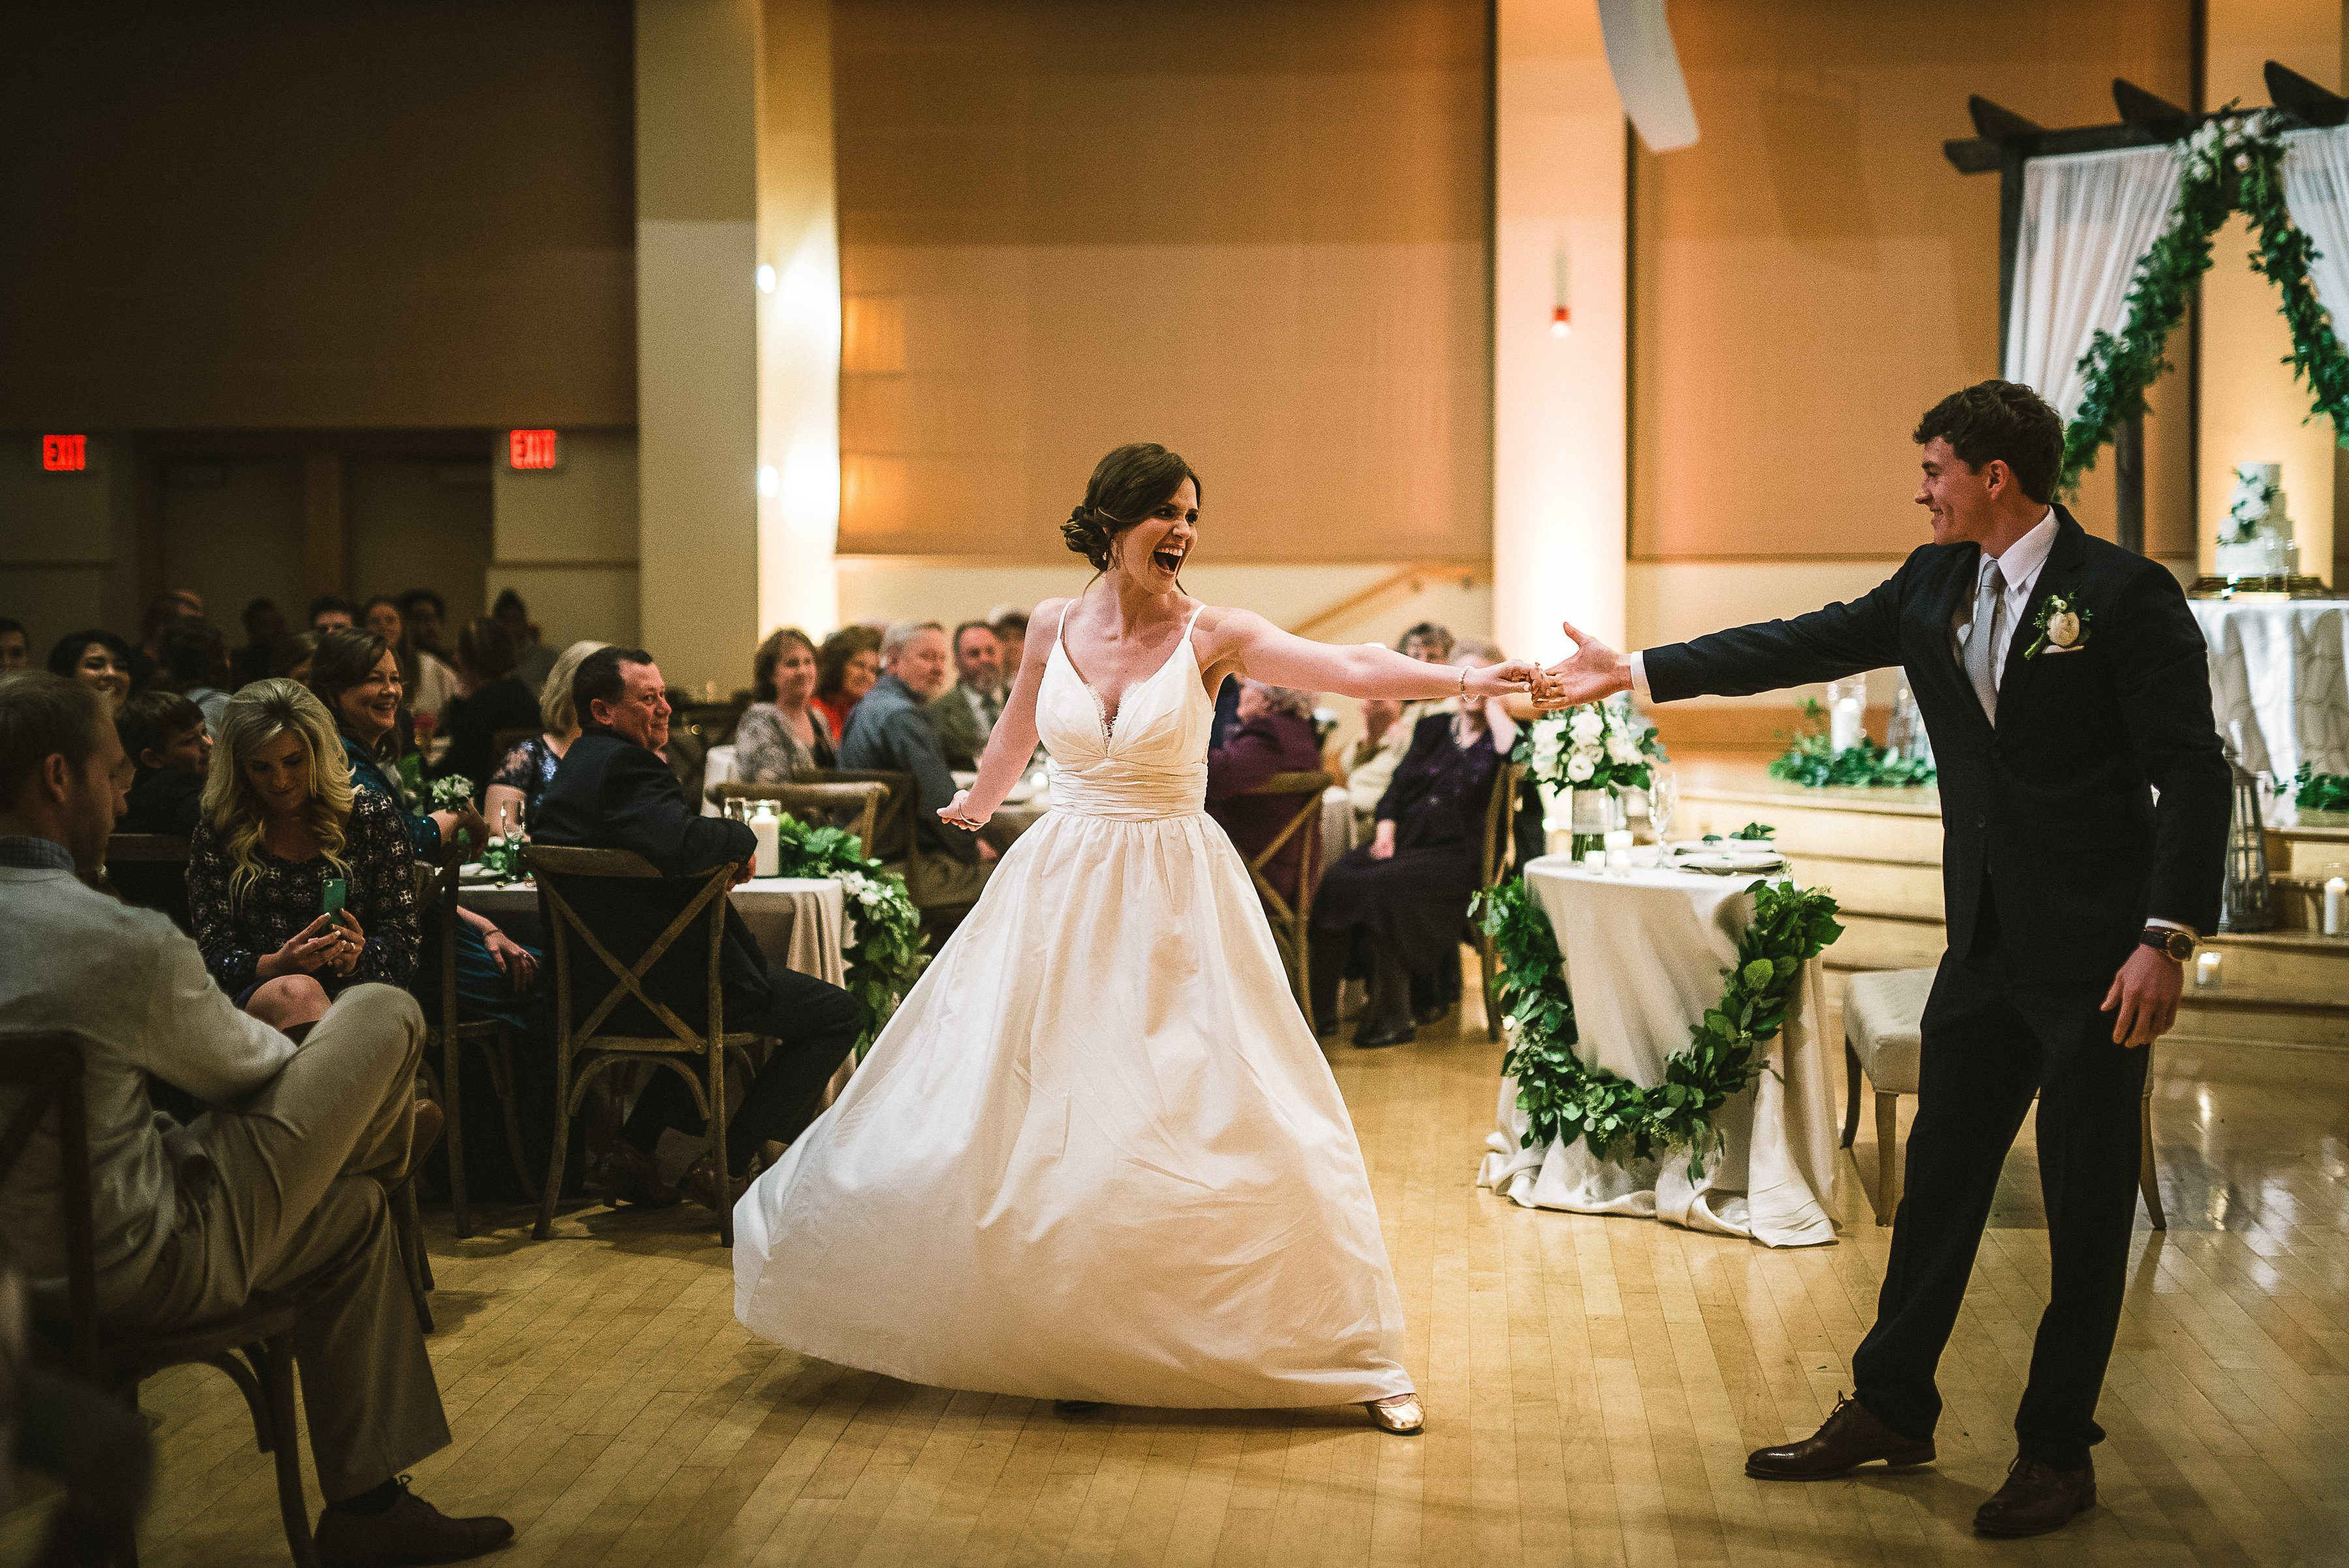 Lyndsey Wesleys Wedding With Triad Dj Events Triad Dj Events